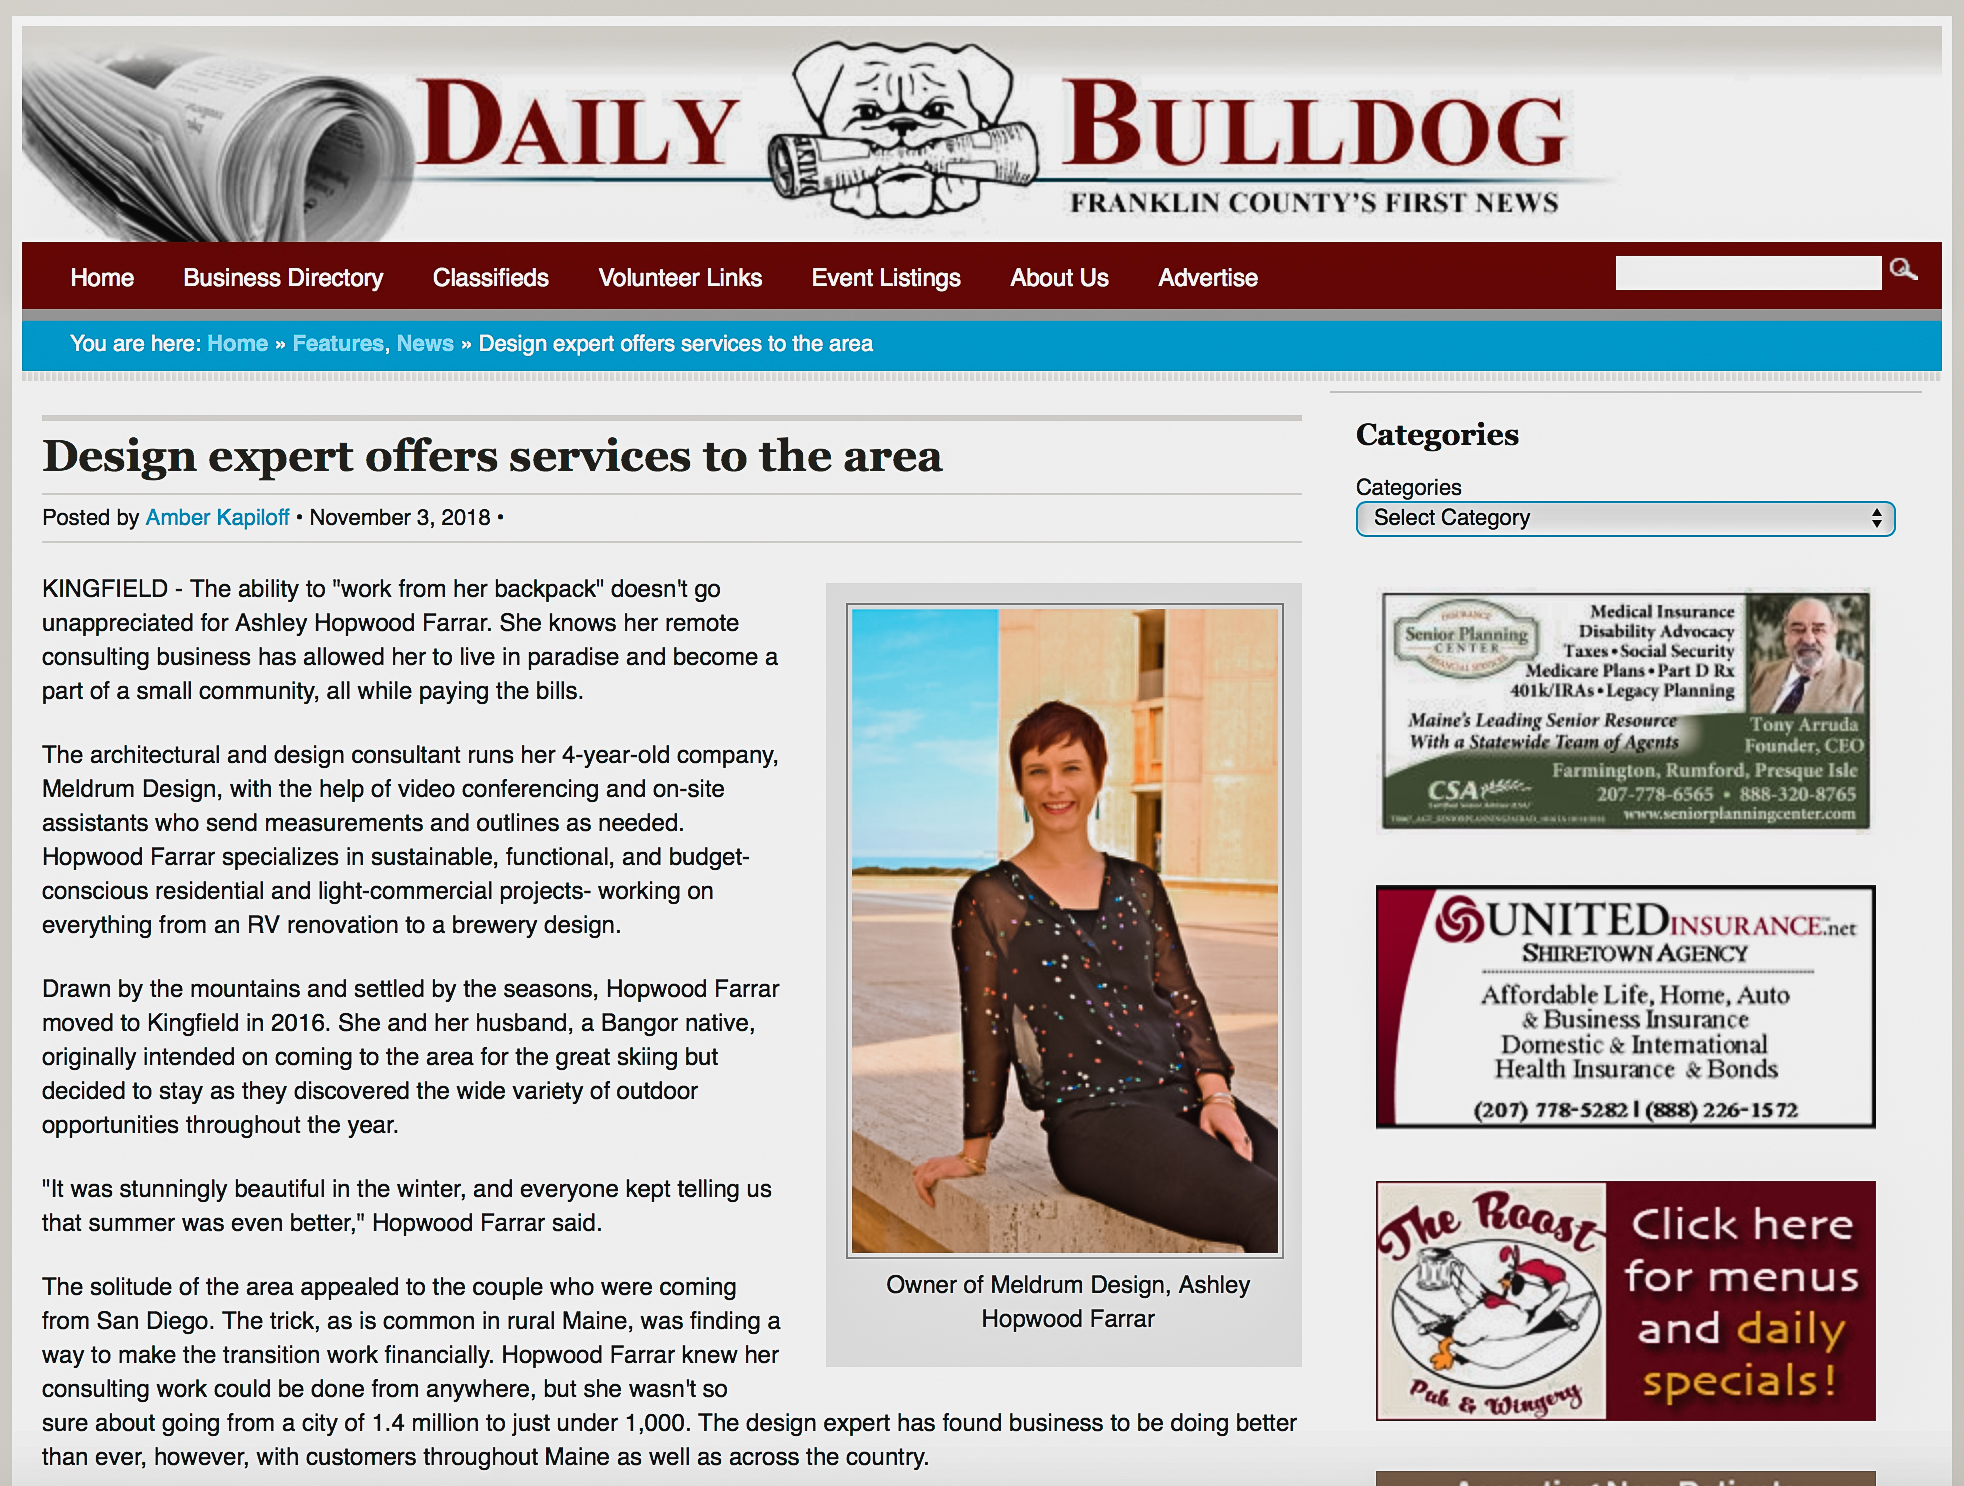 @MeldrumDesign Daily Bulldog  feature - Design expert offers services to the area